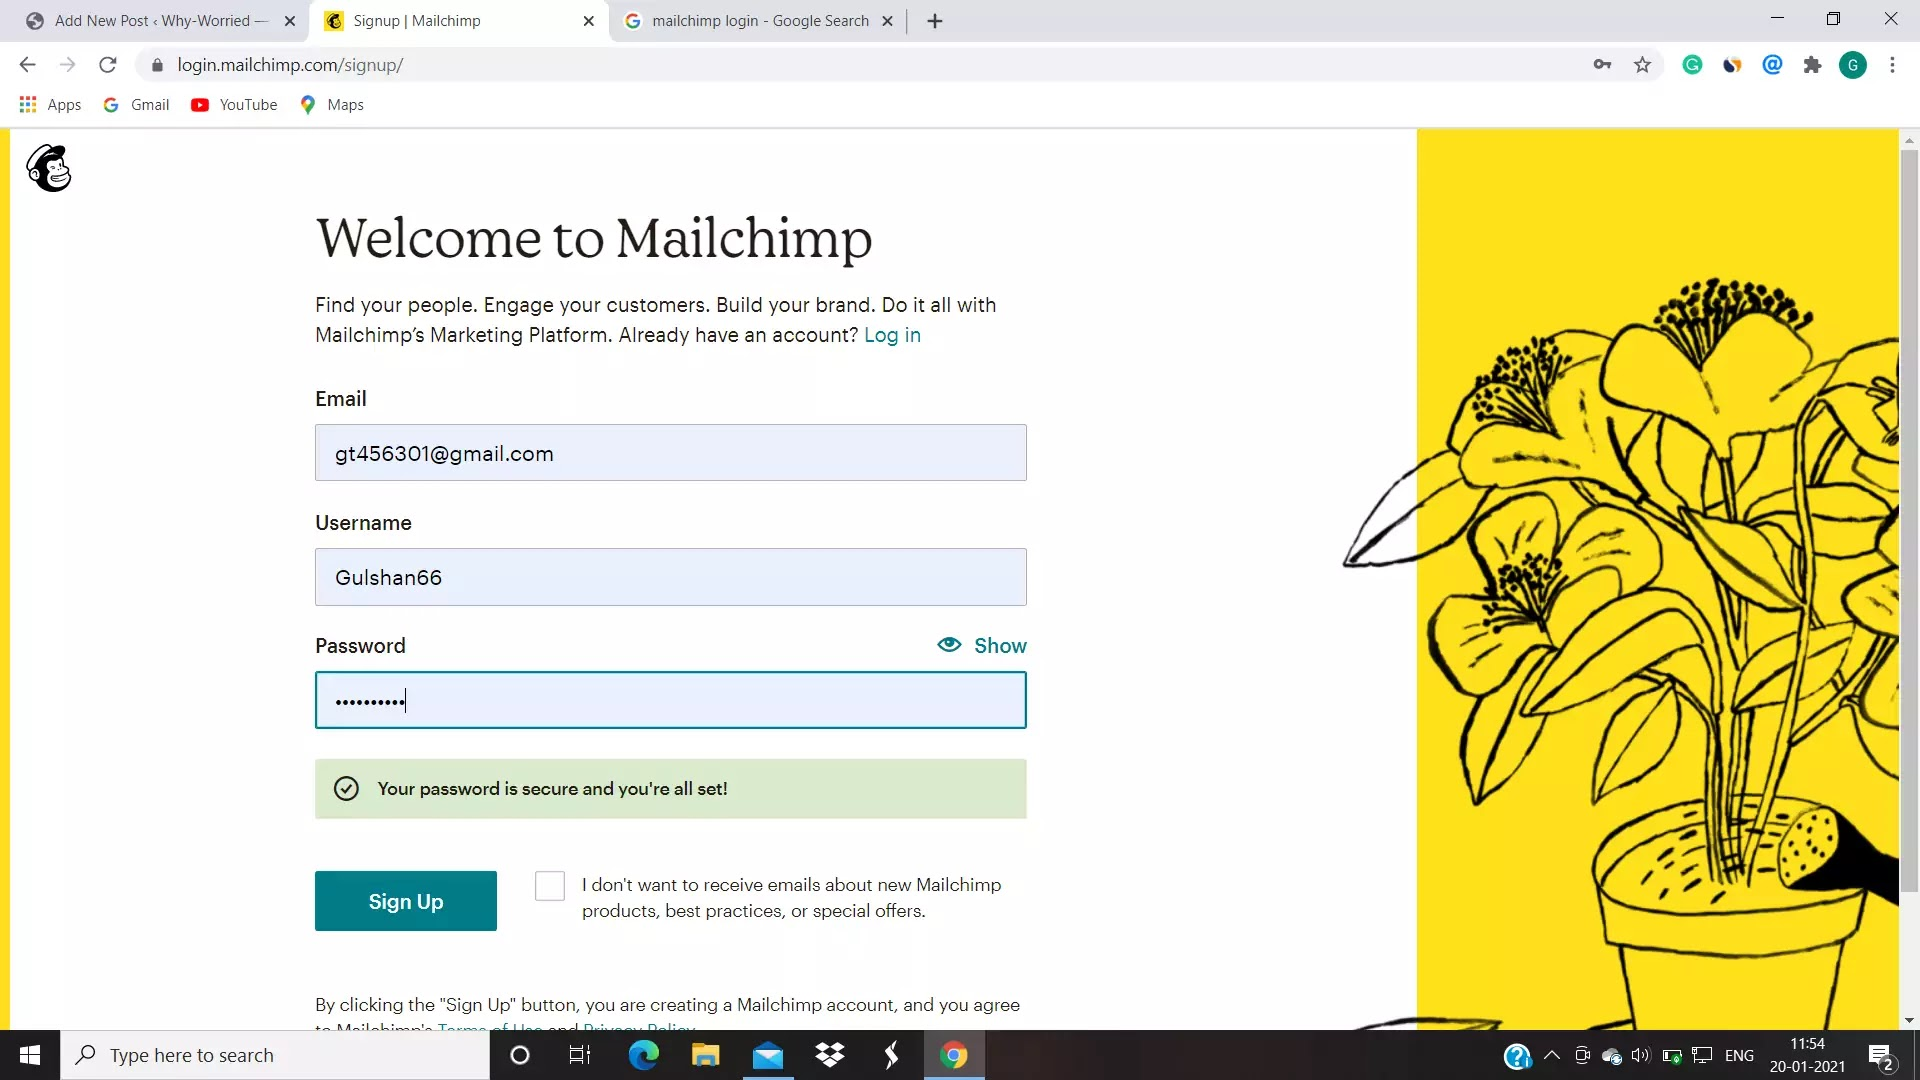 email images of mail chimp dashboard